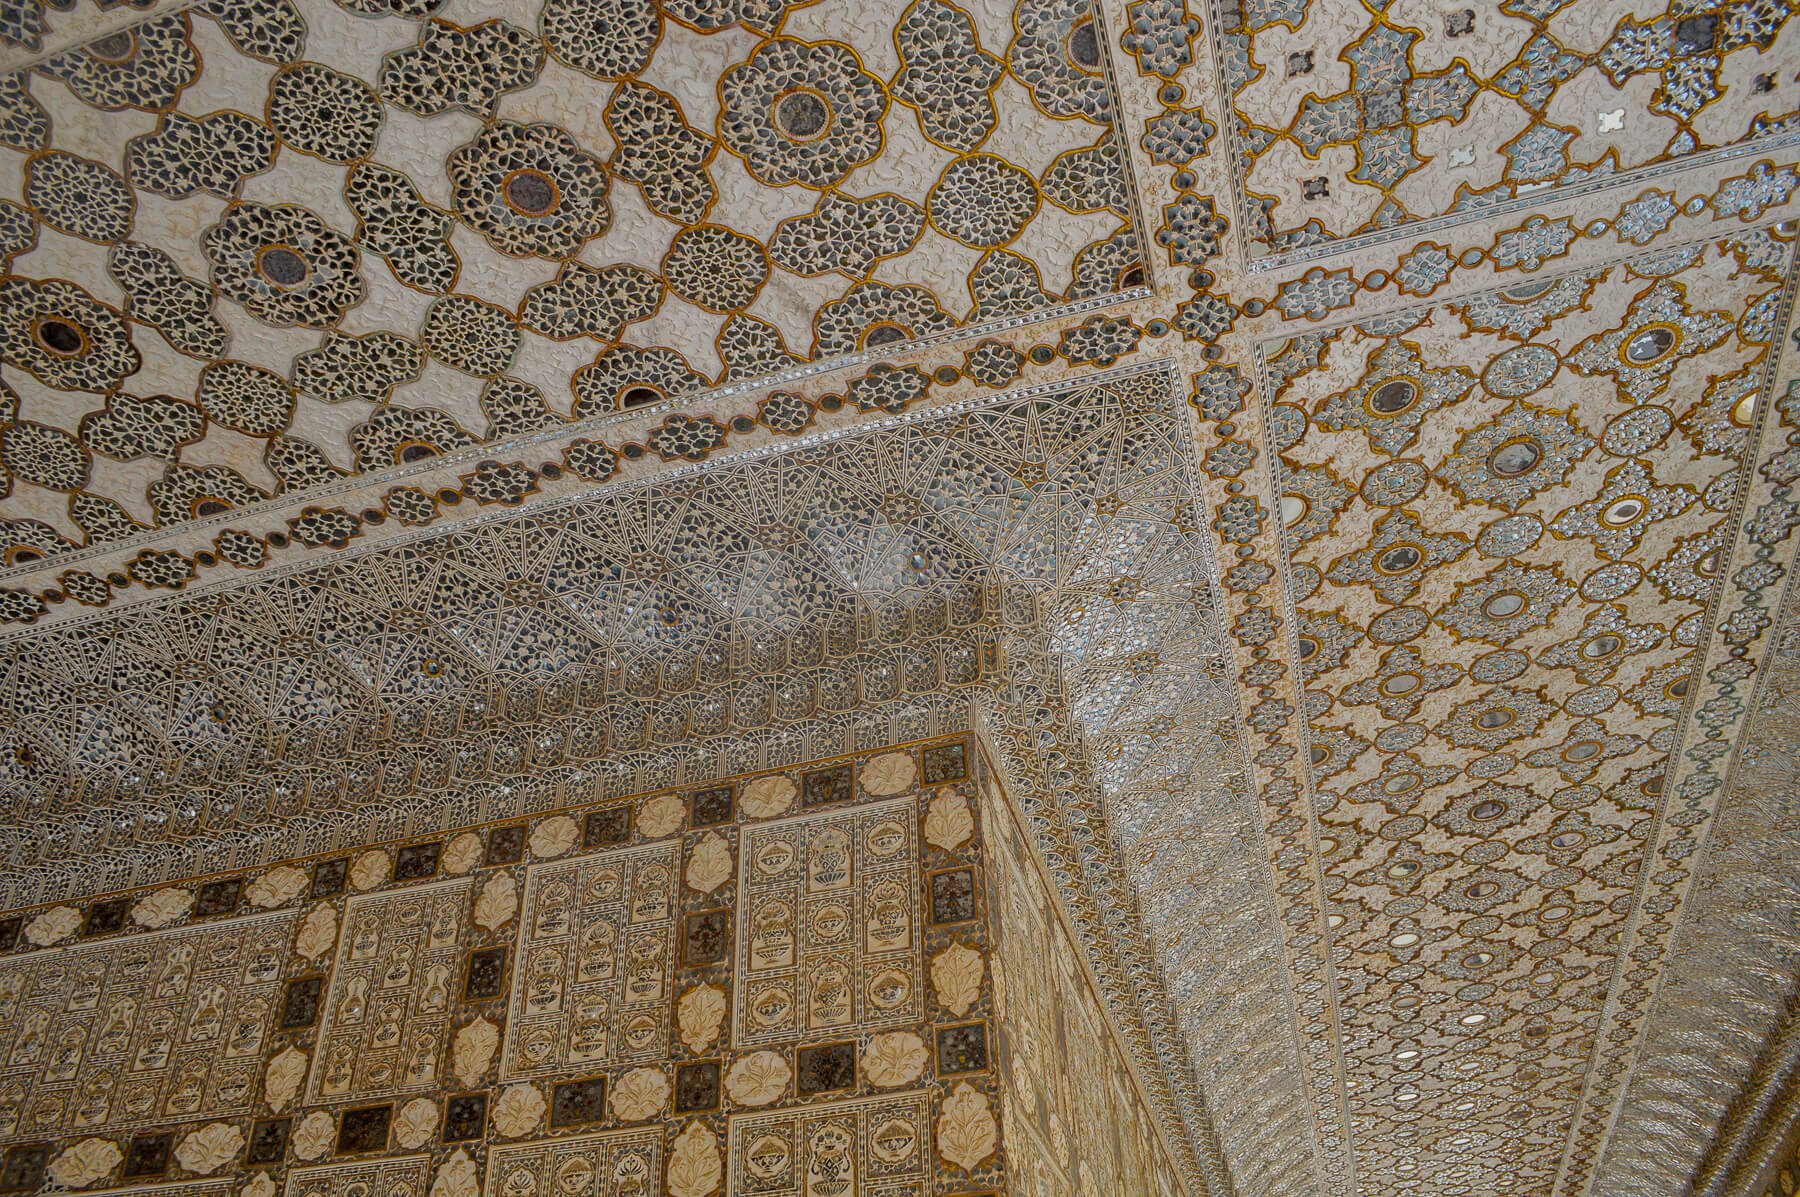 Detailed tile pattern on the ceiling on a Palace